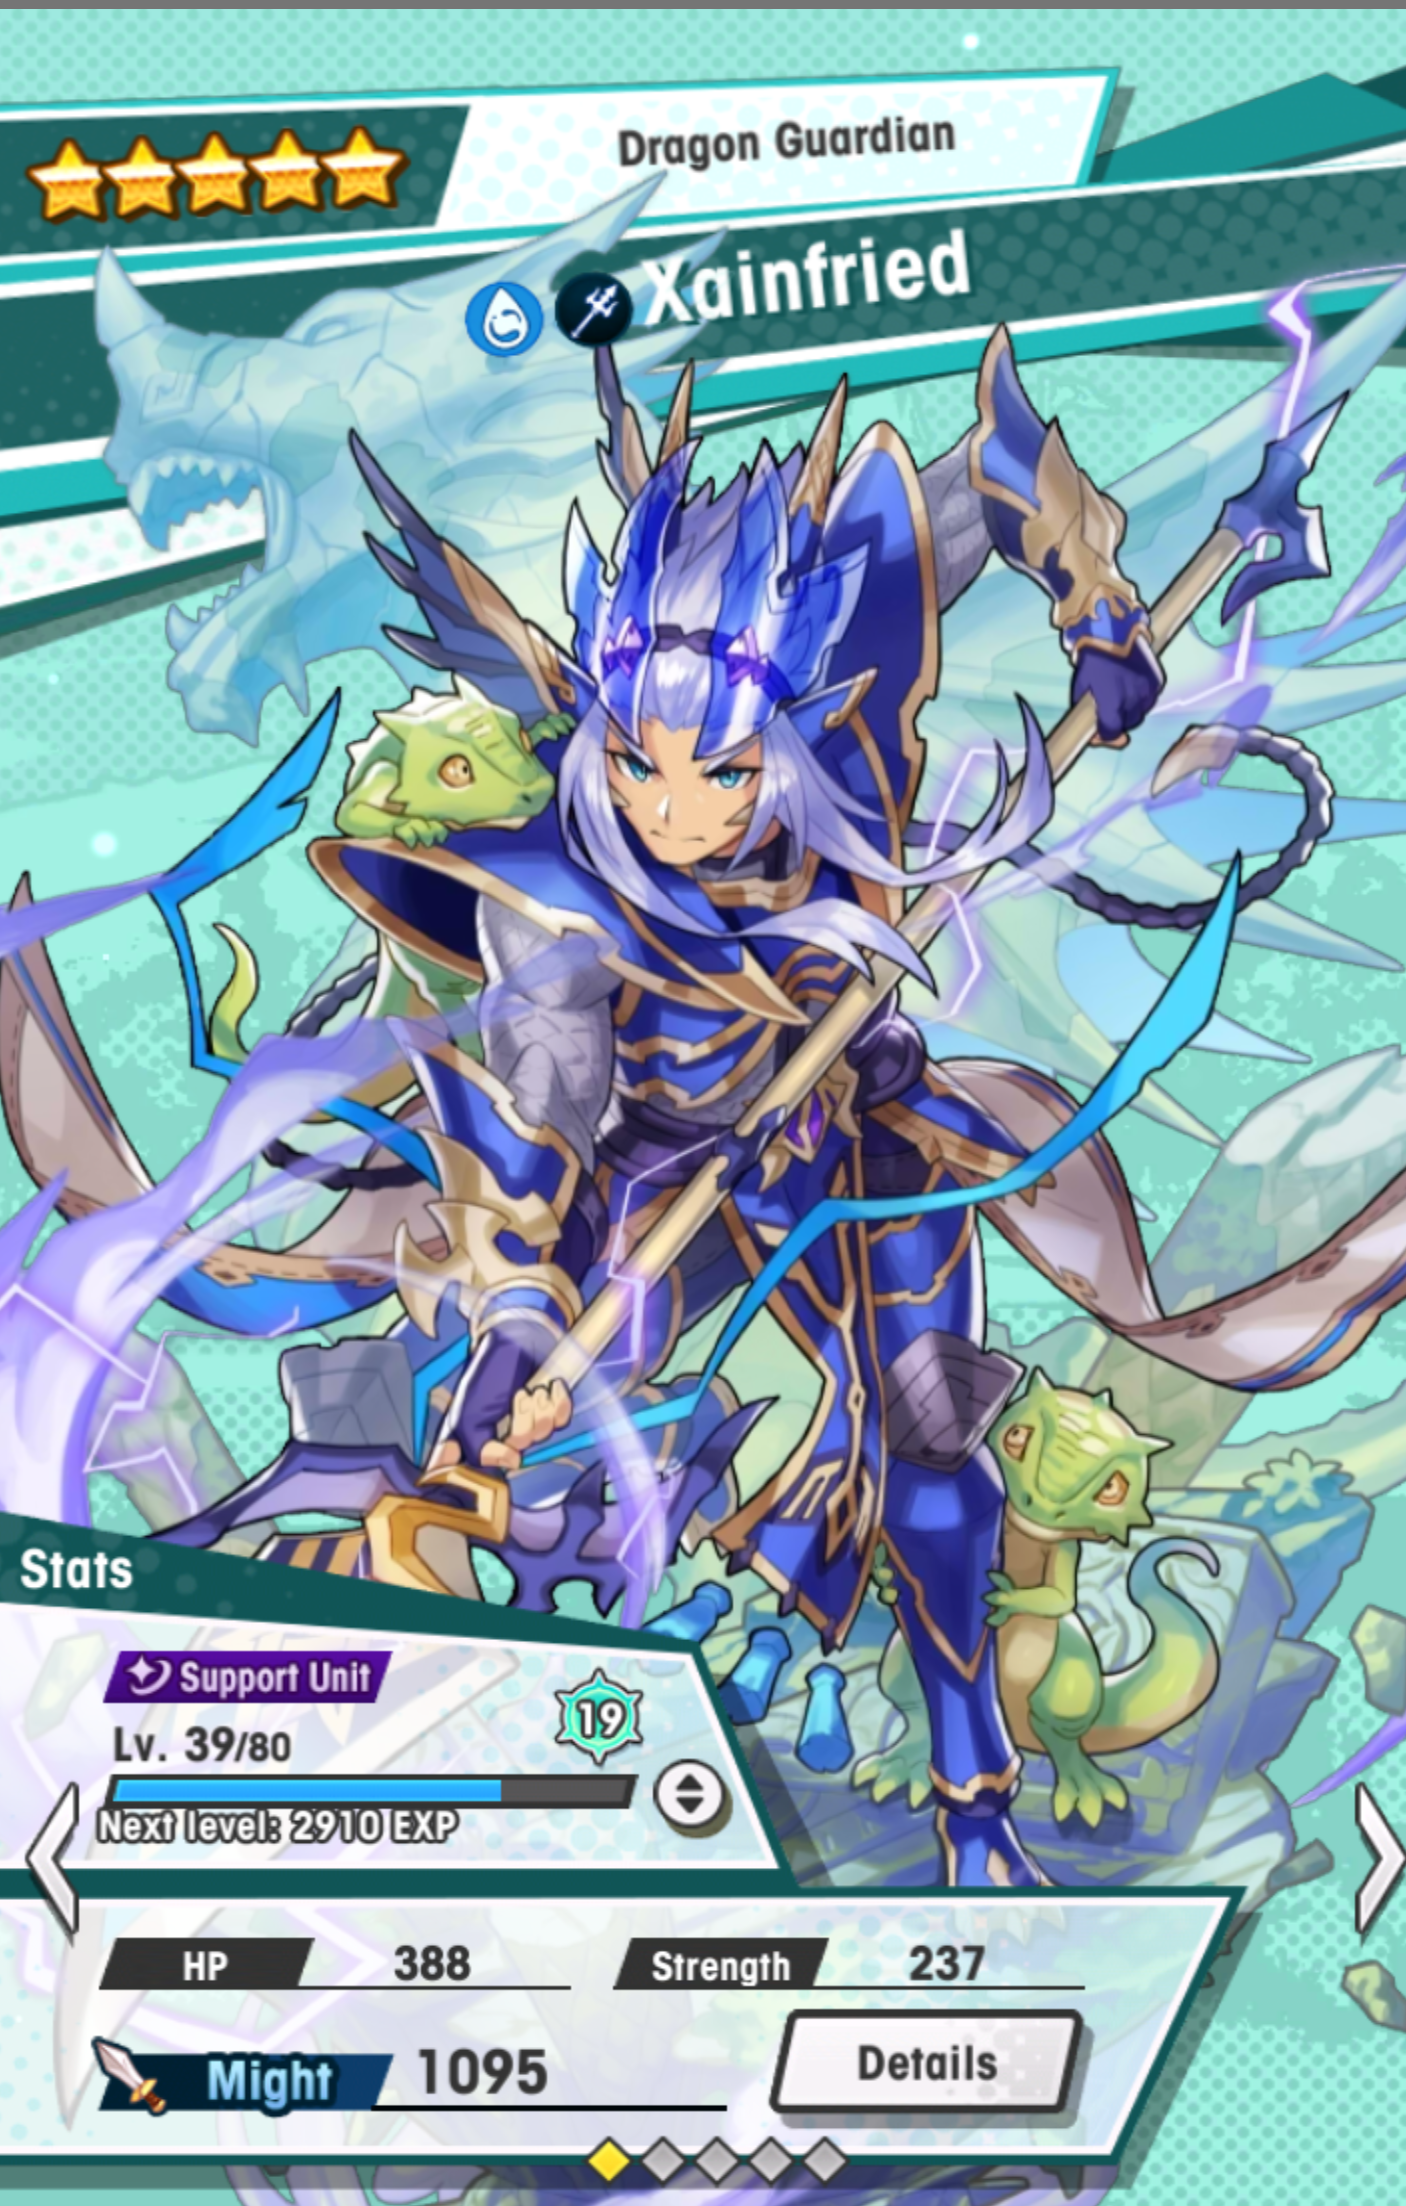 dragalia lost xanfried